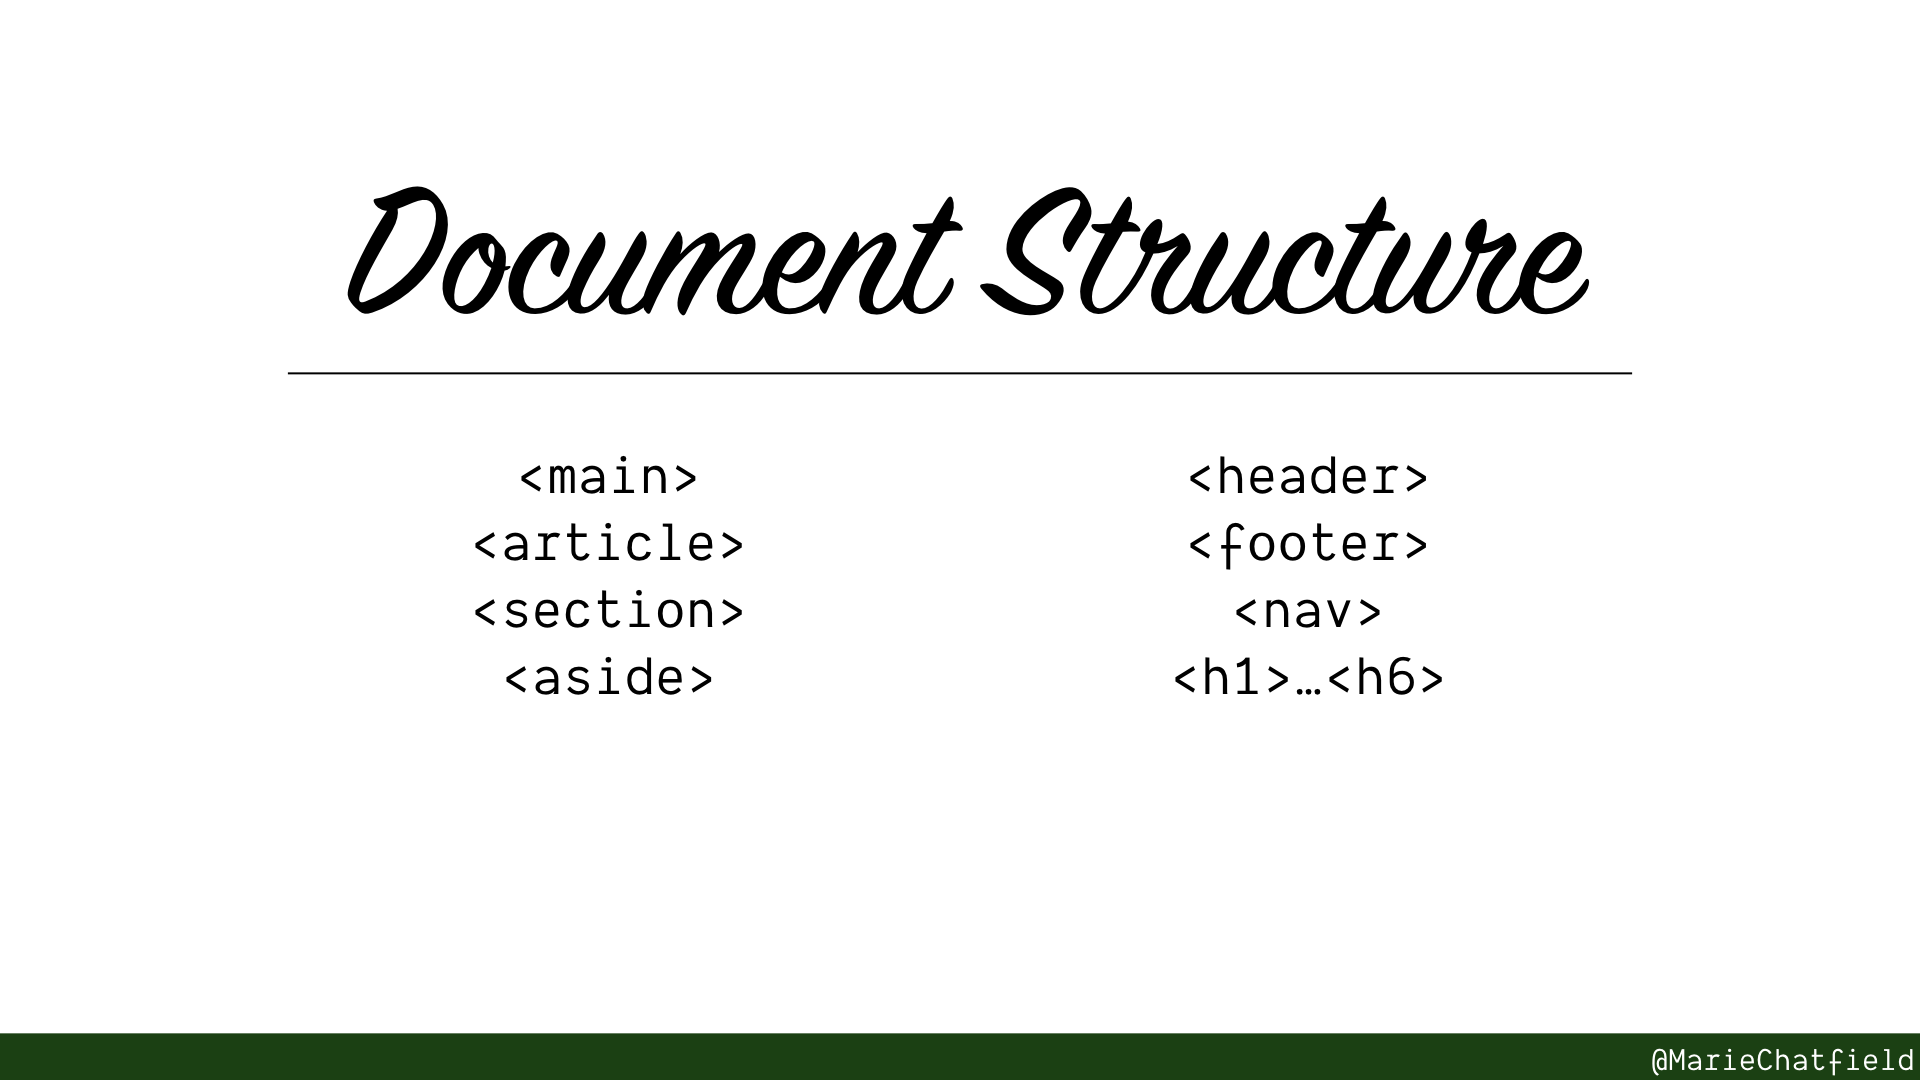 Slide of Document Structure with HTML elements listed